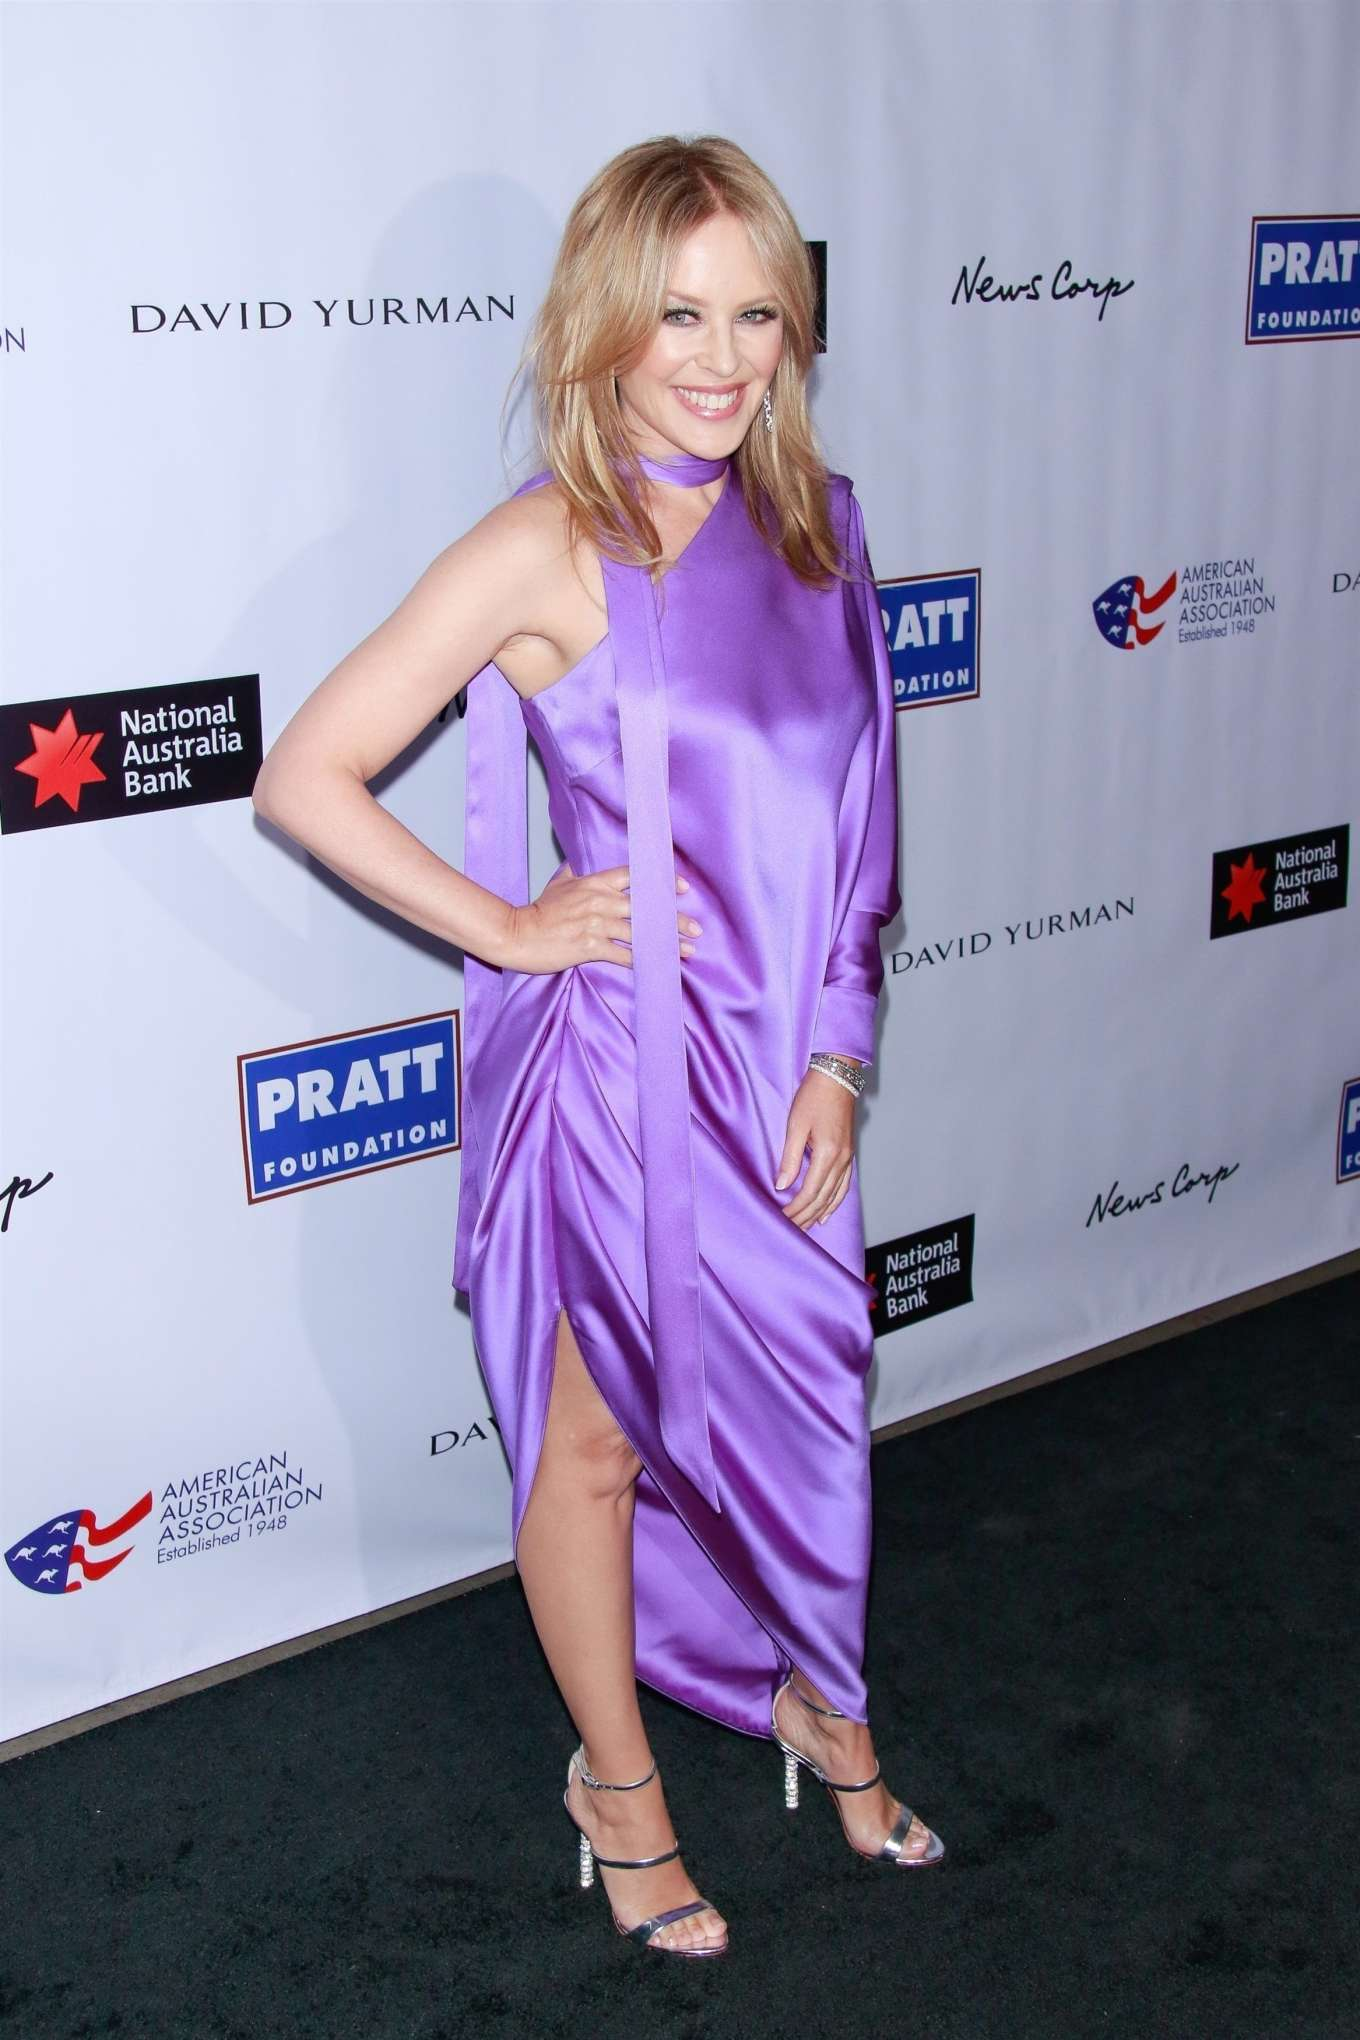 Kylie Minogue - 2020 American Australian Association Arts Awards Dinner in NY